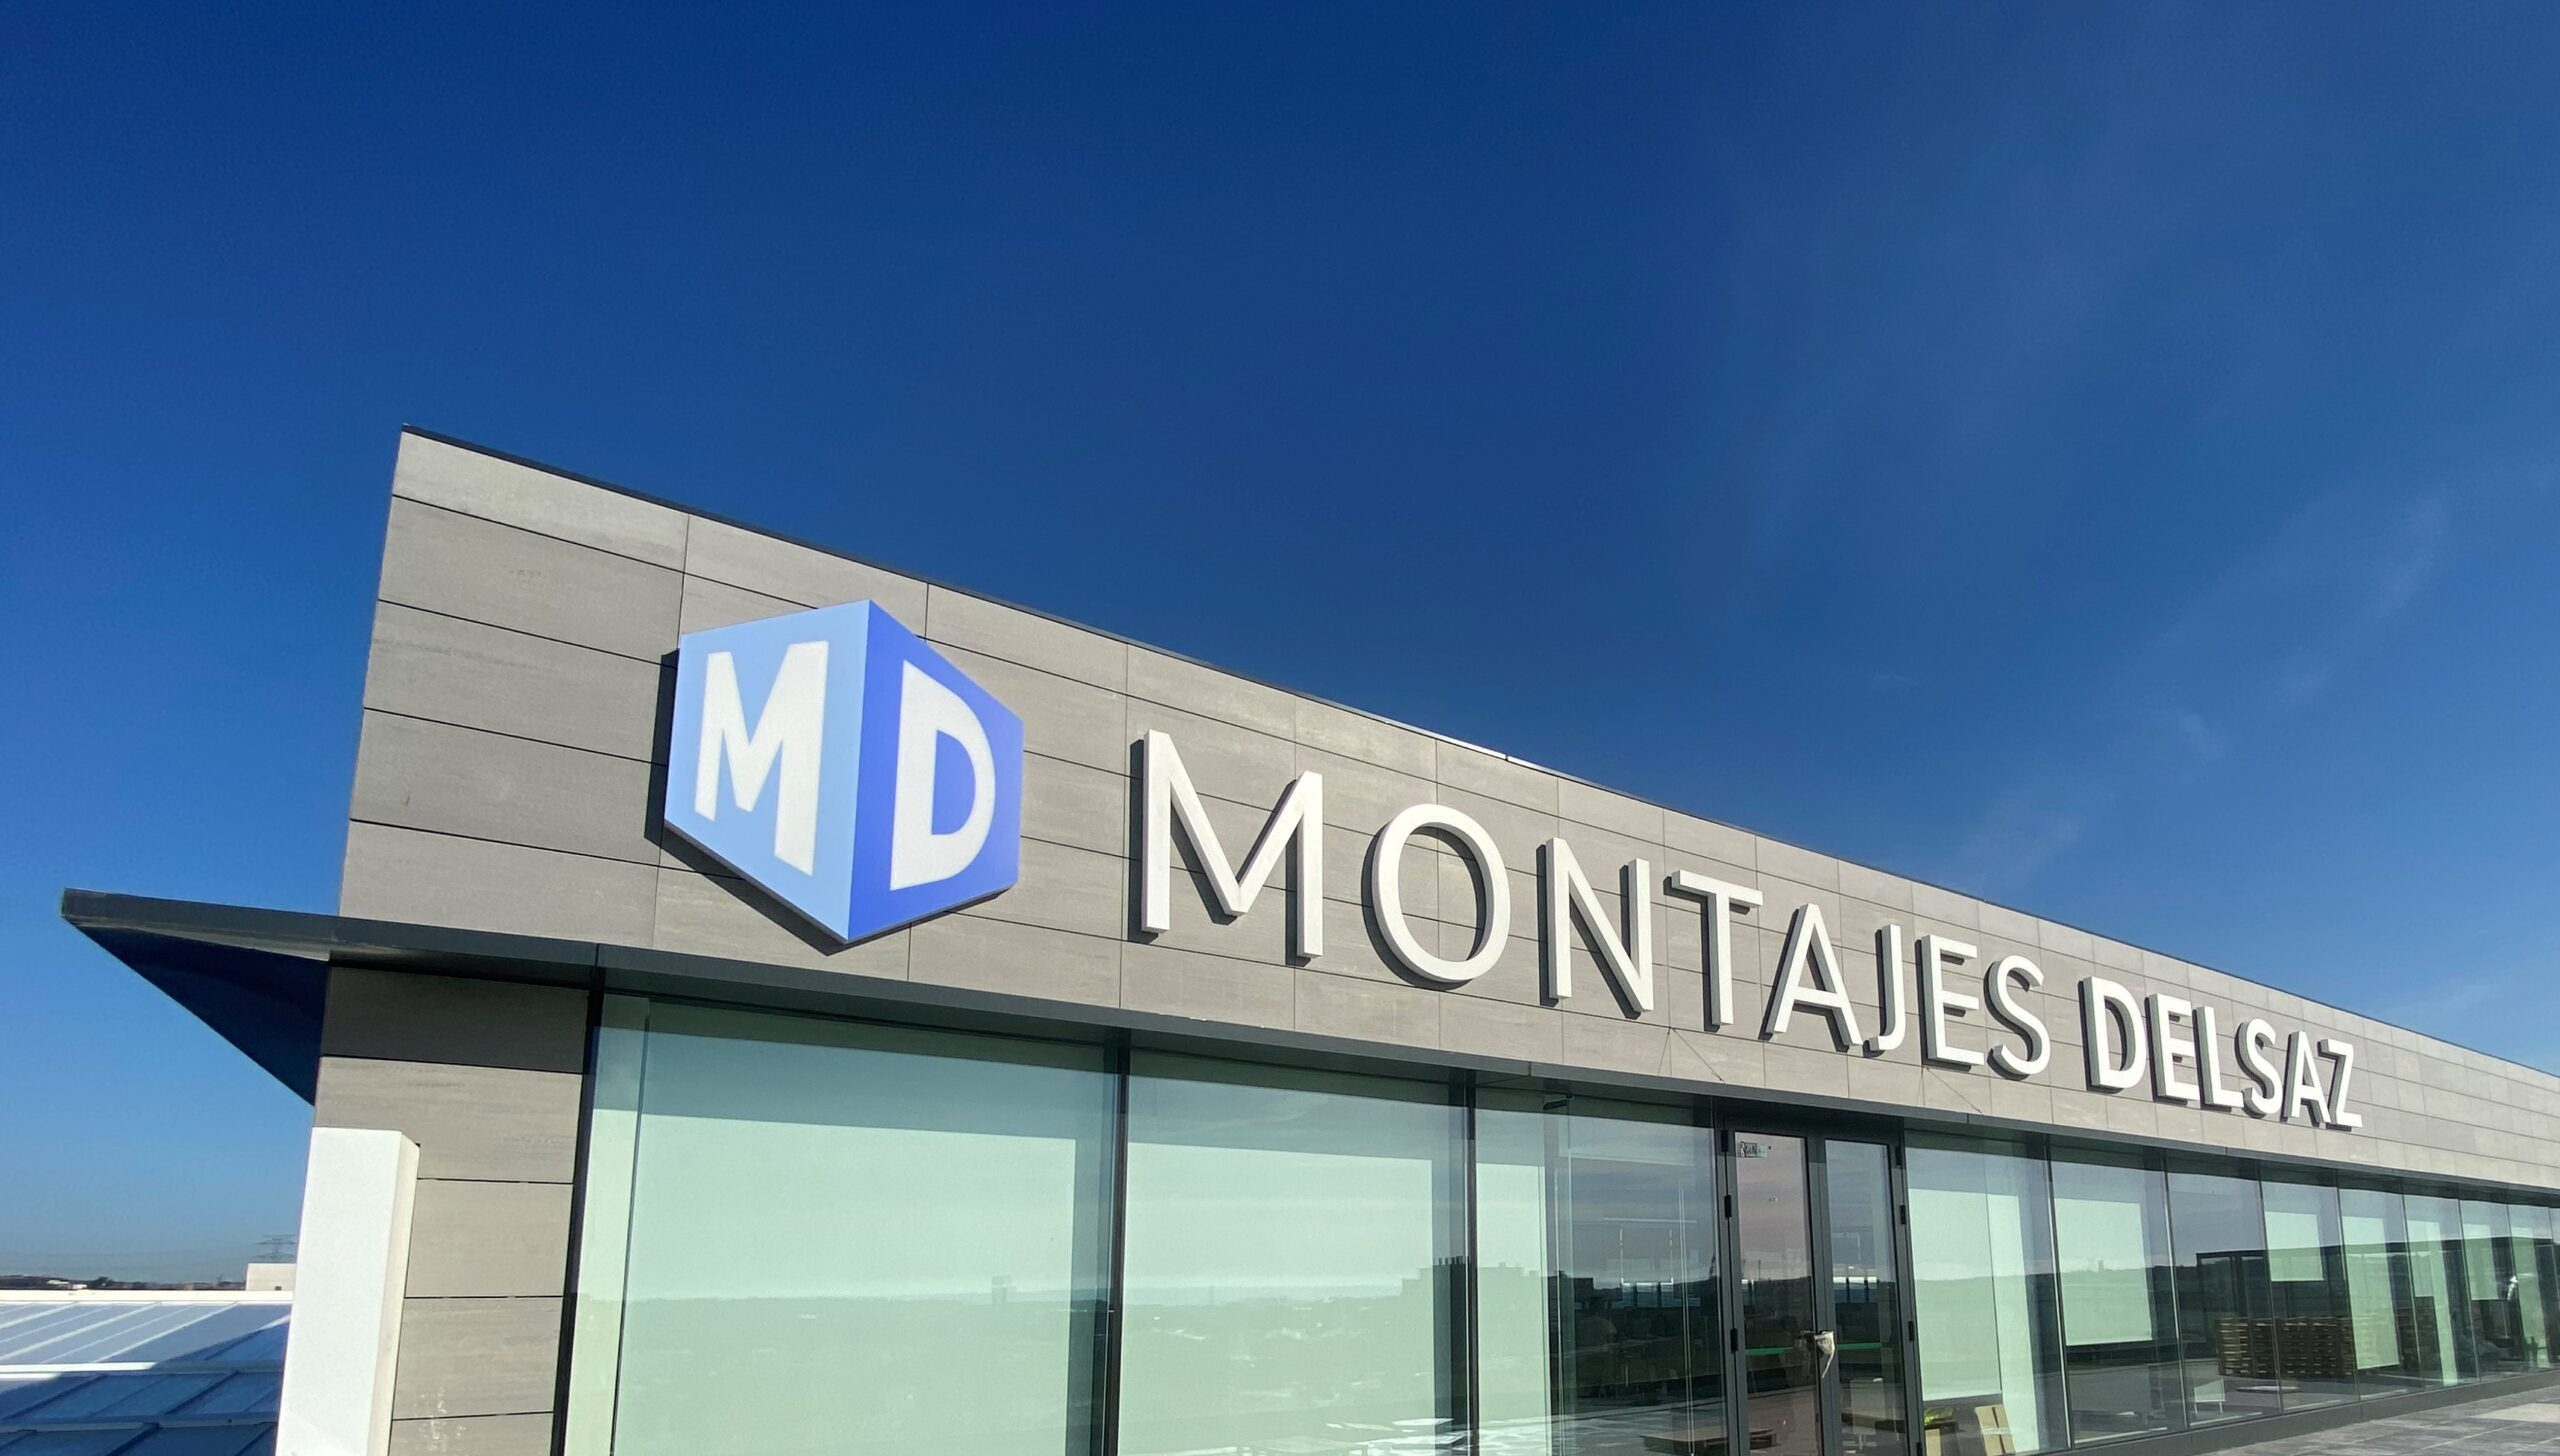 Montajes Delsaz continues to grow with the opening of its new offices in Madrid